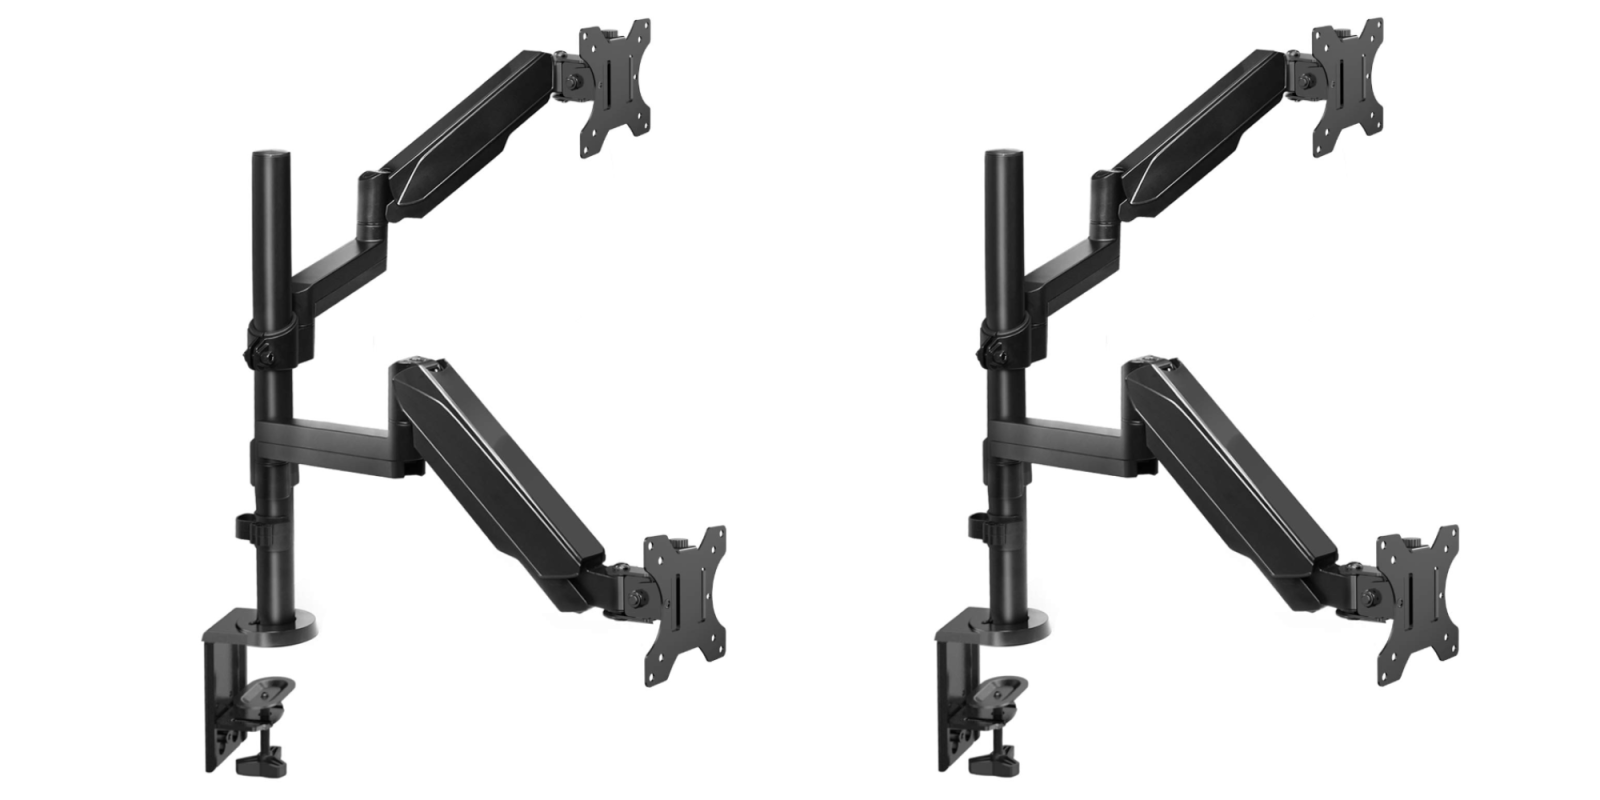 Elevate two monitors with this well-reviewed dual arm gas spring mount at $42.50 (Reg. $70)